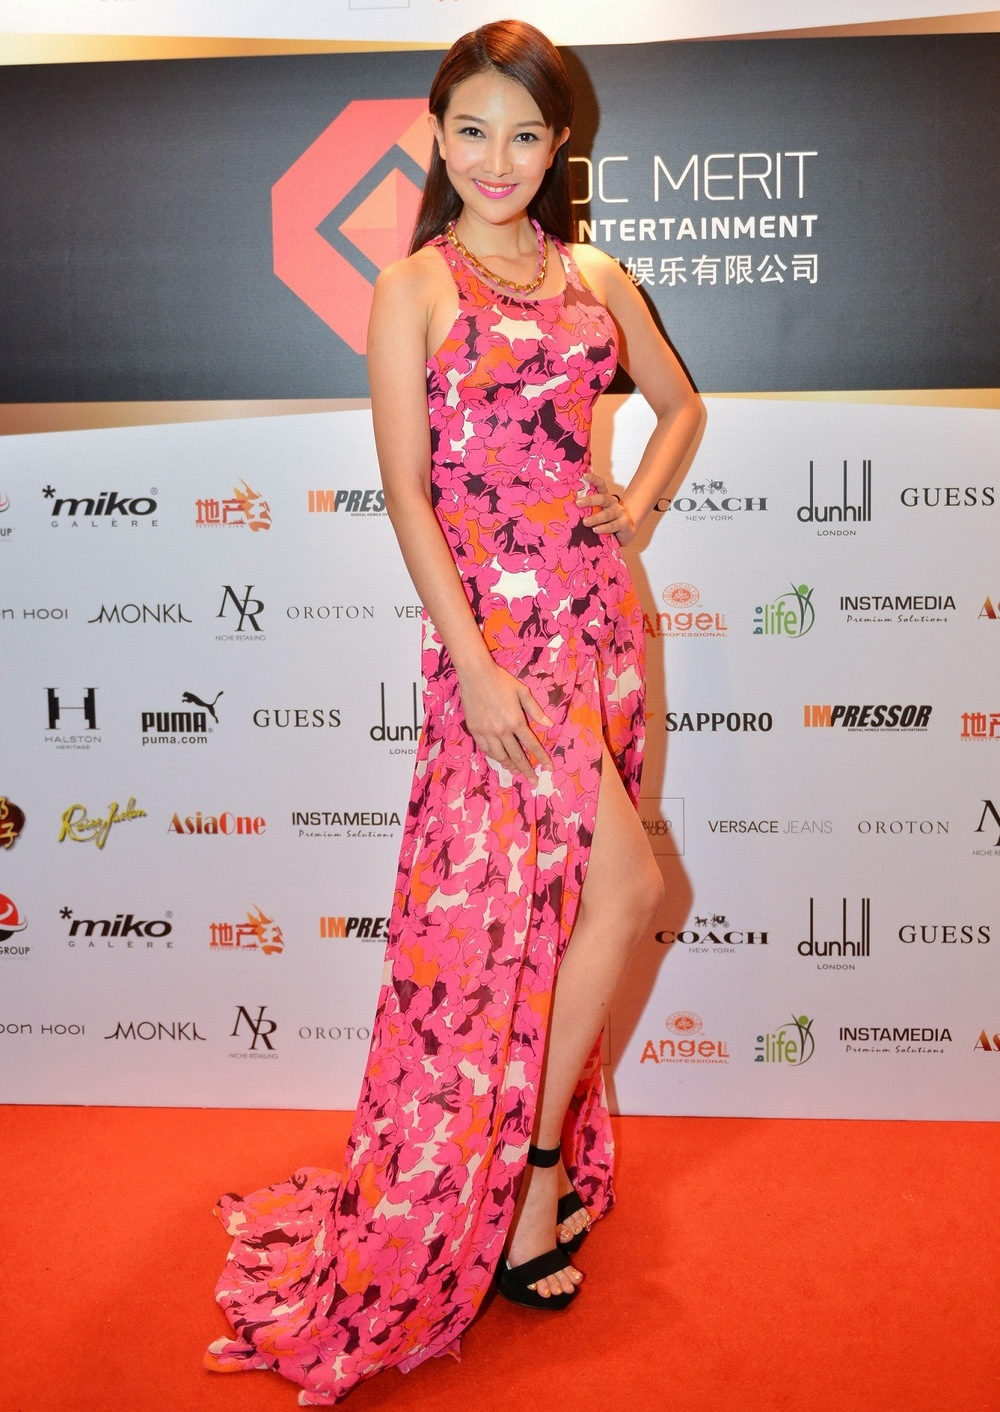 Malaysia - Chris Tong Bing Yu - OC-Merit-Entertainment-Grand-Launch-6028a.jpg